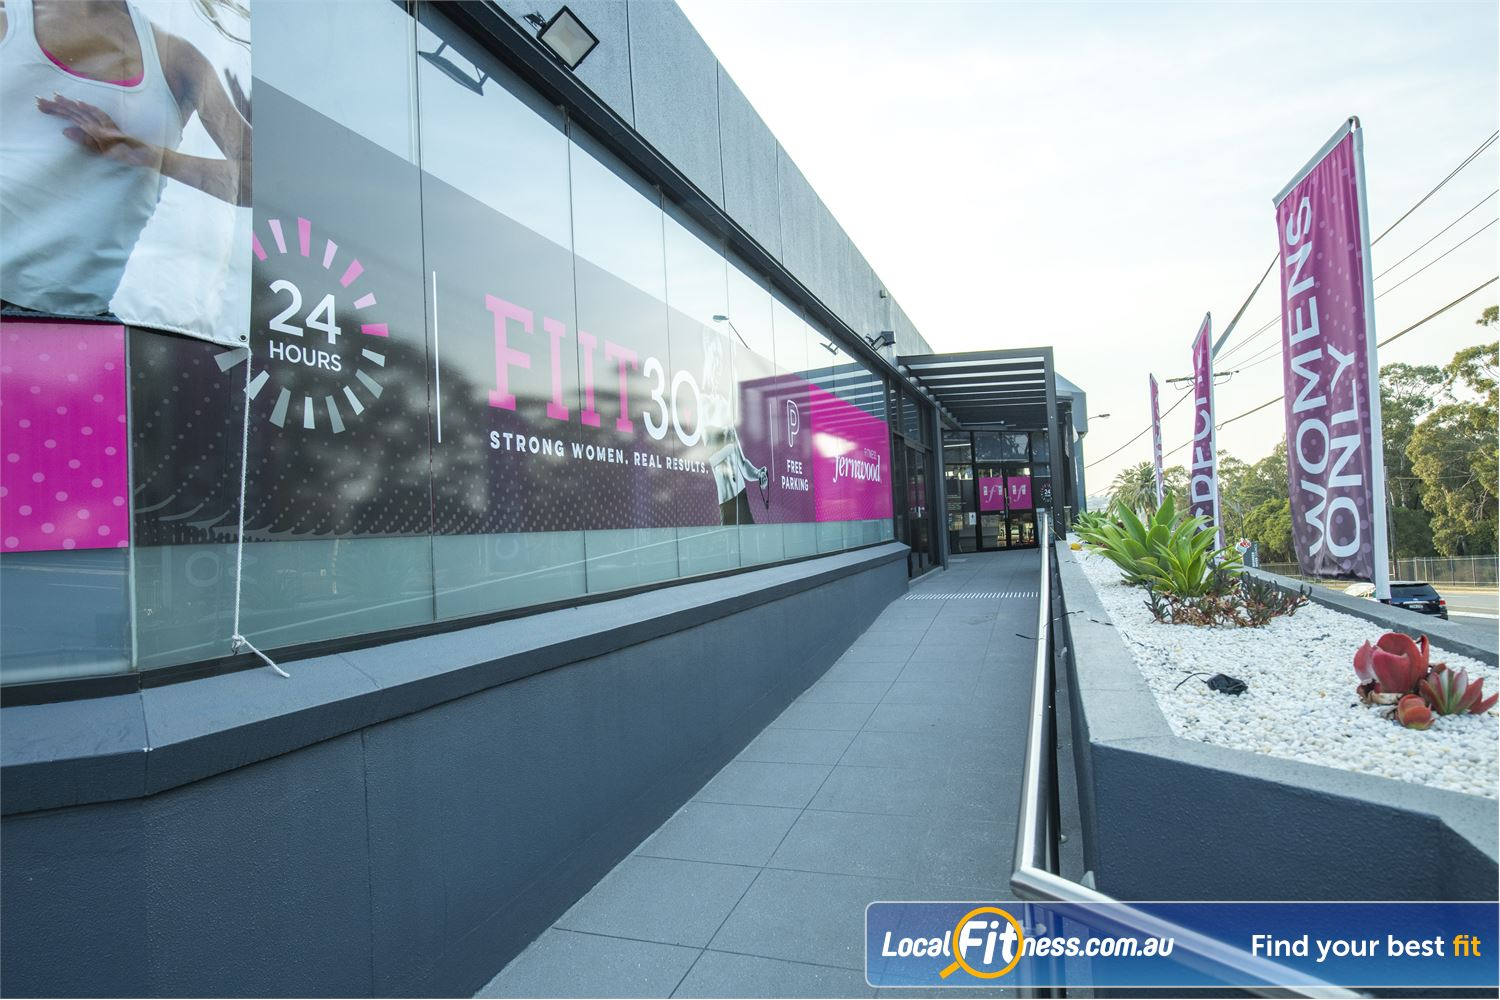 Fernwood Fitness Beverly Hills Fernwood is open around the clock 24/7 Beverly Hills gym access.